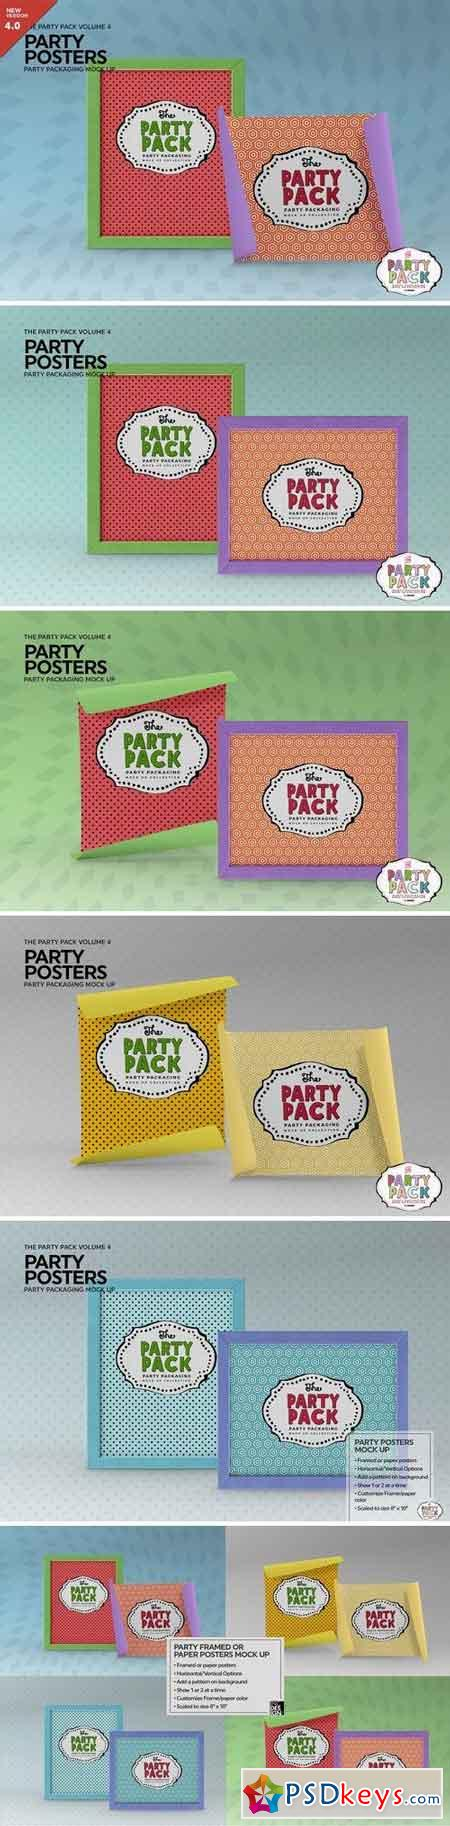 Party Posters Packaging MockUp 2199343